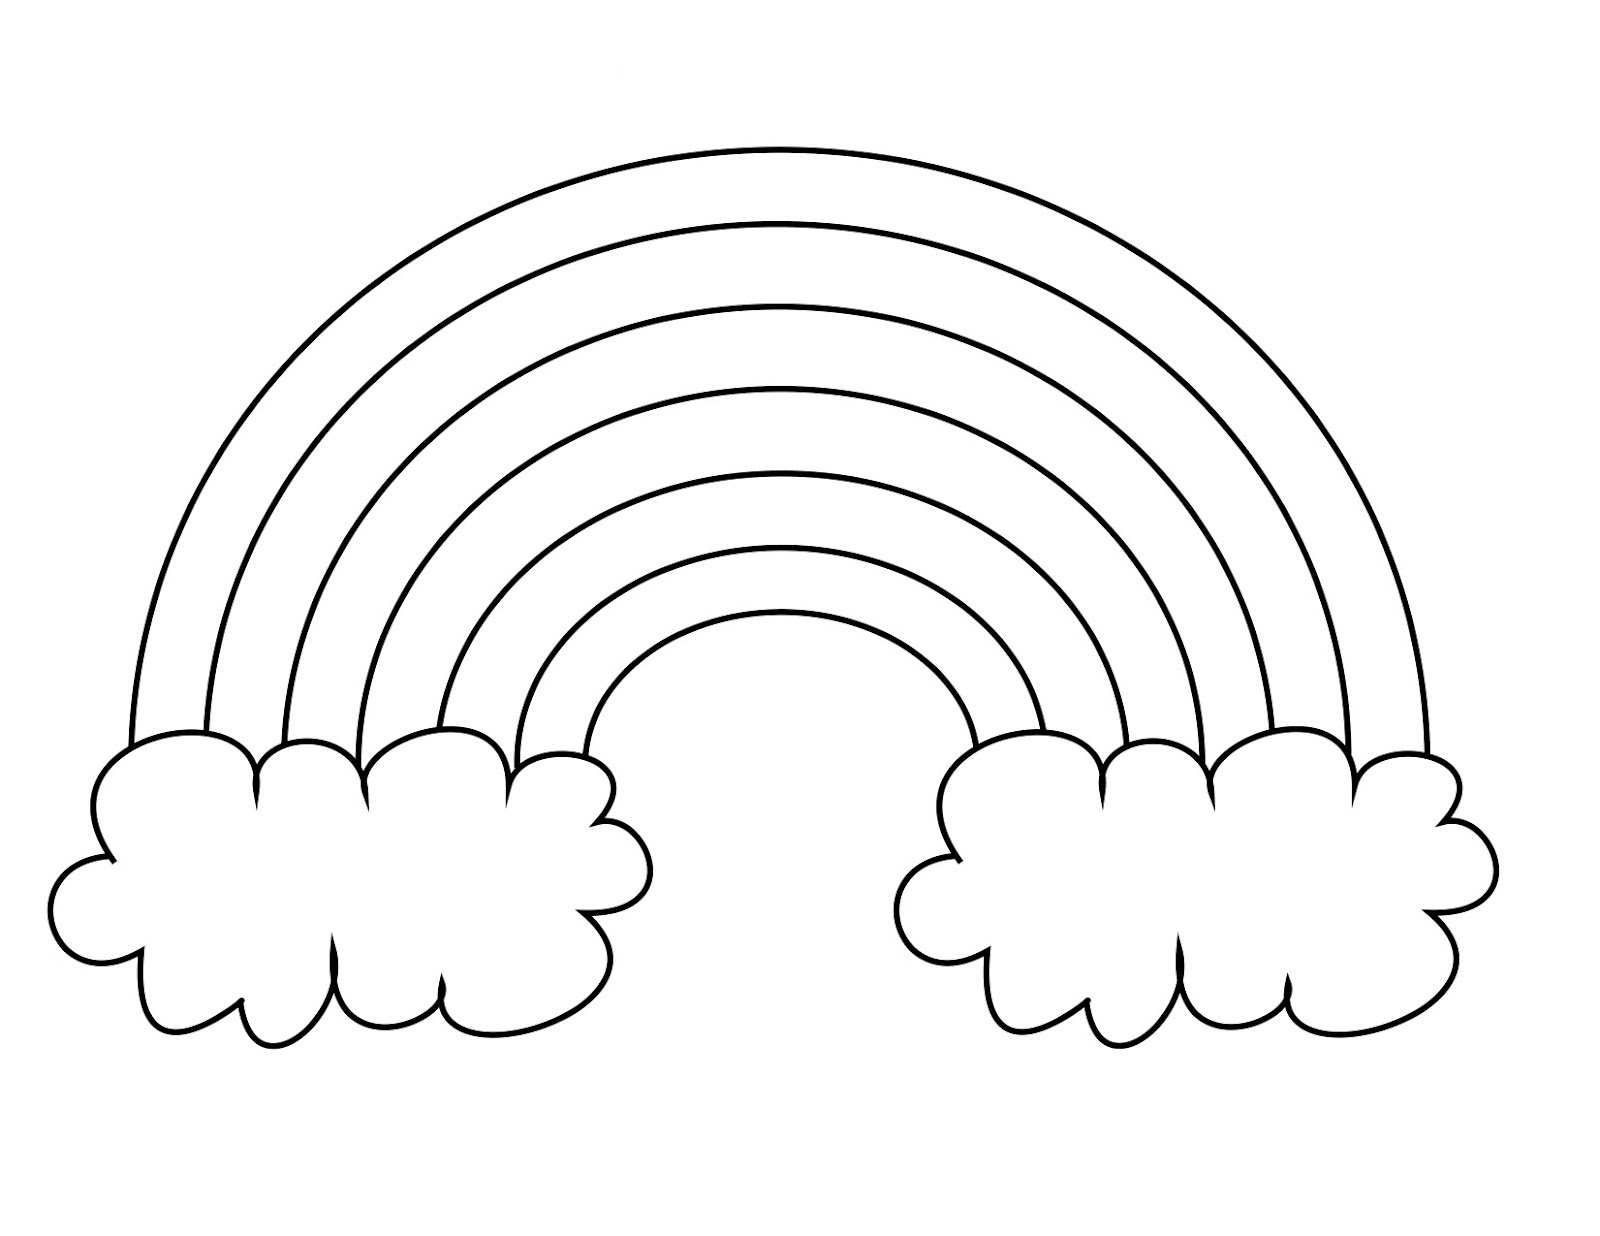 Free Printable Rainbow Coloring Pages For Kids - Free Rainbow Printables